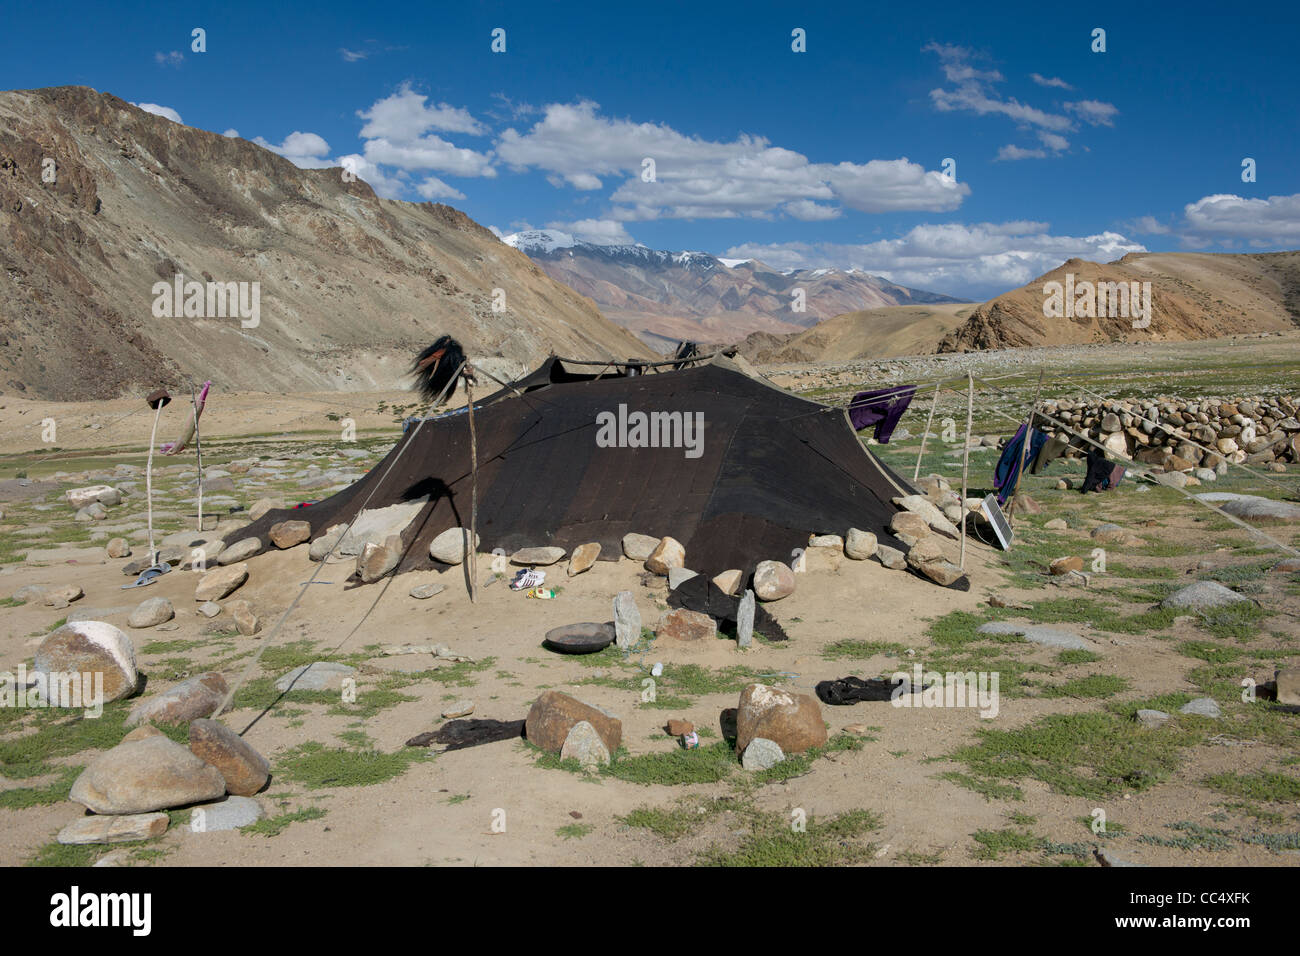 Chang-pa nomad yak-wool tent on the rugged plain above Korzok snow-capped mountains behind Lake Tsomoriri (Ladakh) Jammu u0026 Kashmir India & Chang-pa nomad yak-wool tent on the rugged plain above Korzok ...